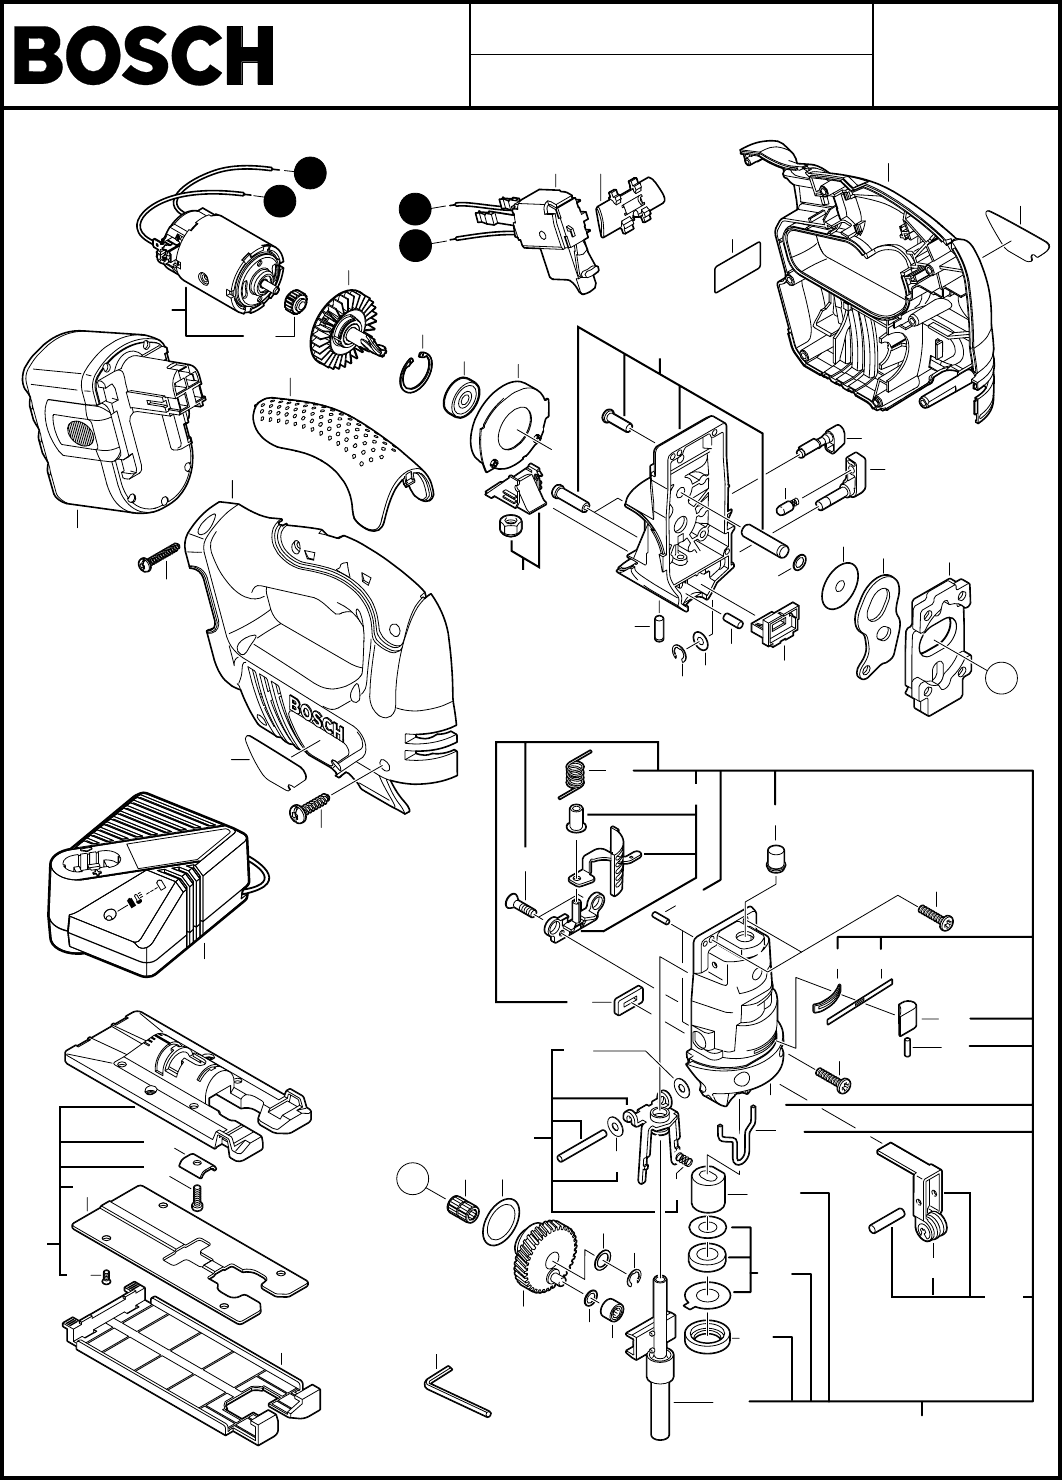 Bosch Power Tools Saw 0601598260 User Guide